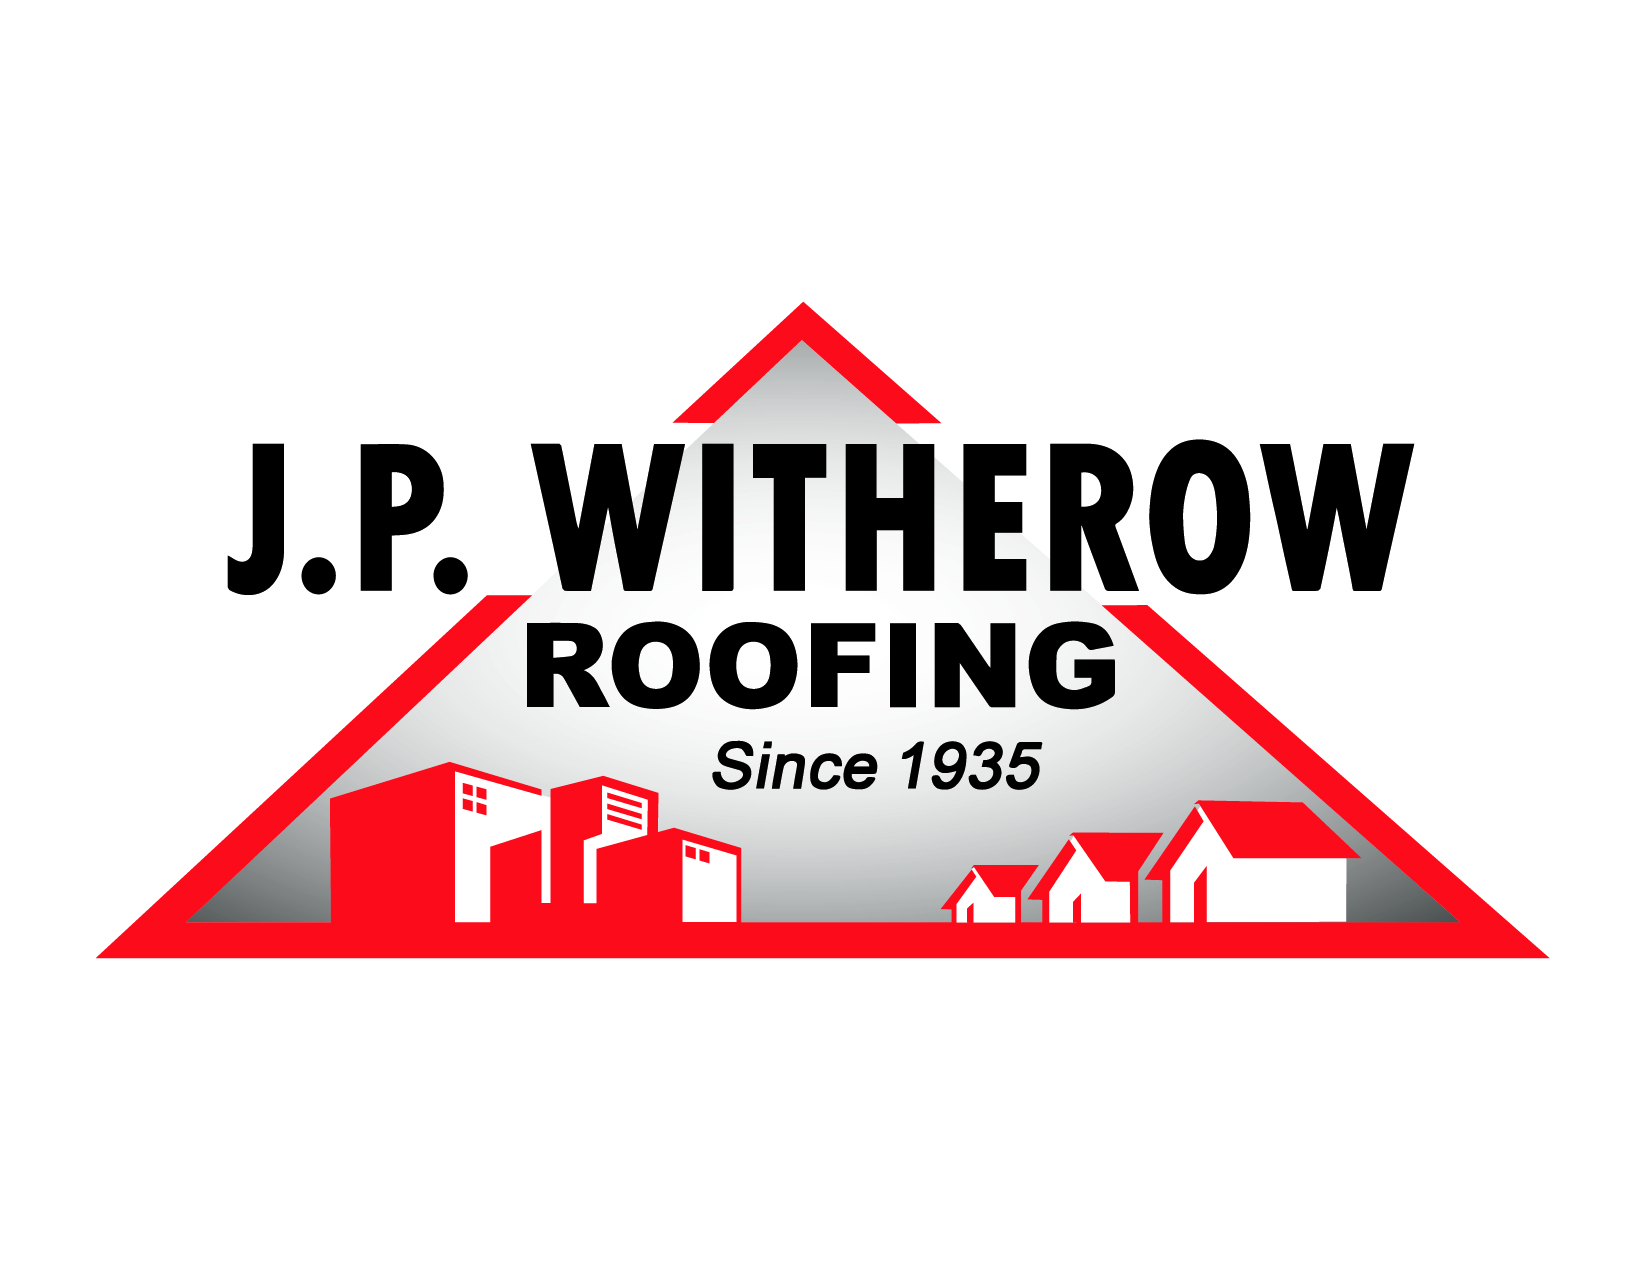 JP Witherow Roofing Company logo